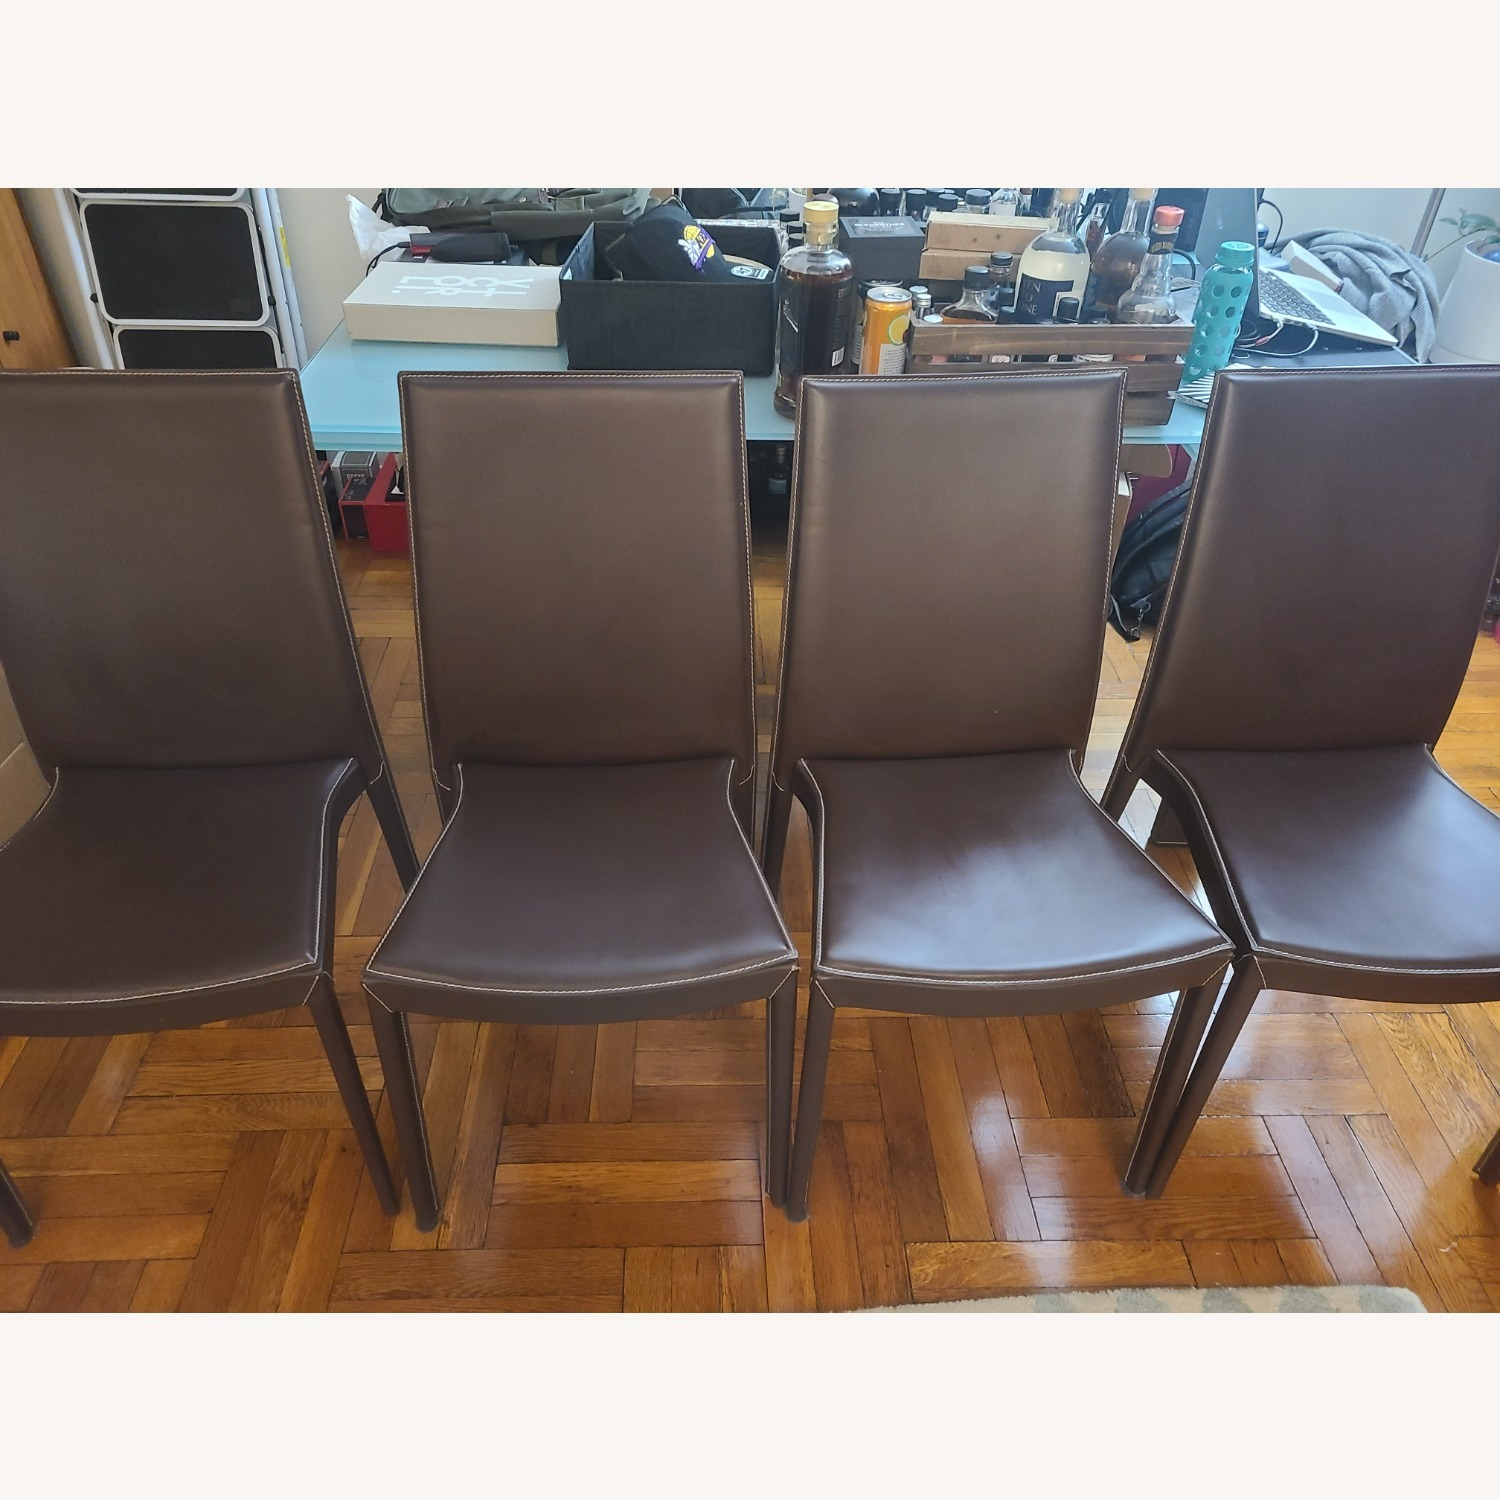 Calligaris Extension Table w/ 4 Chairs - image-18